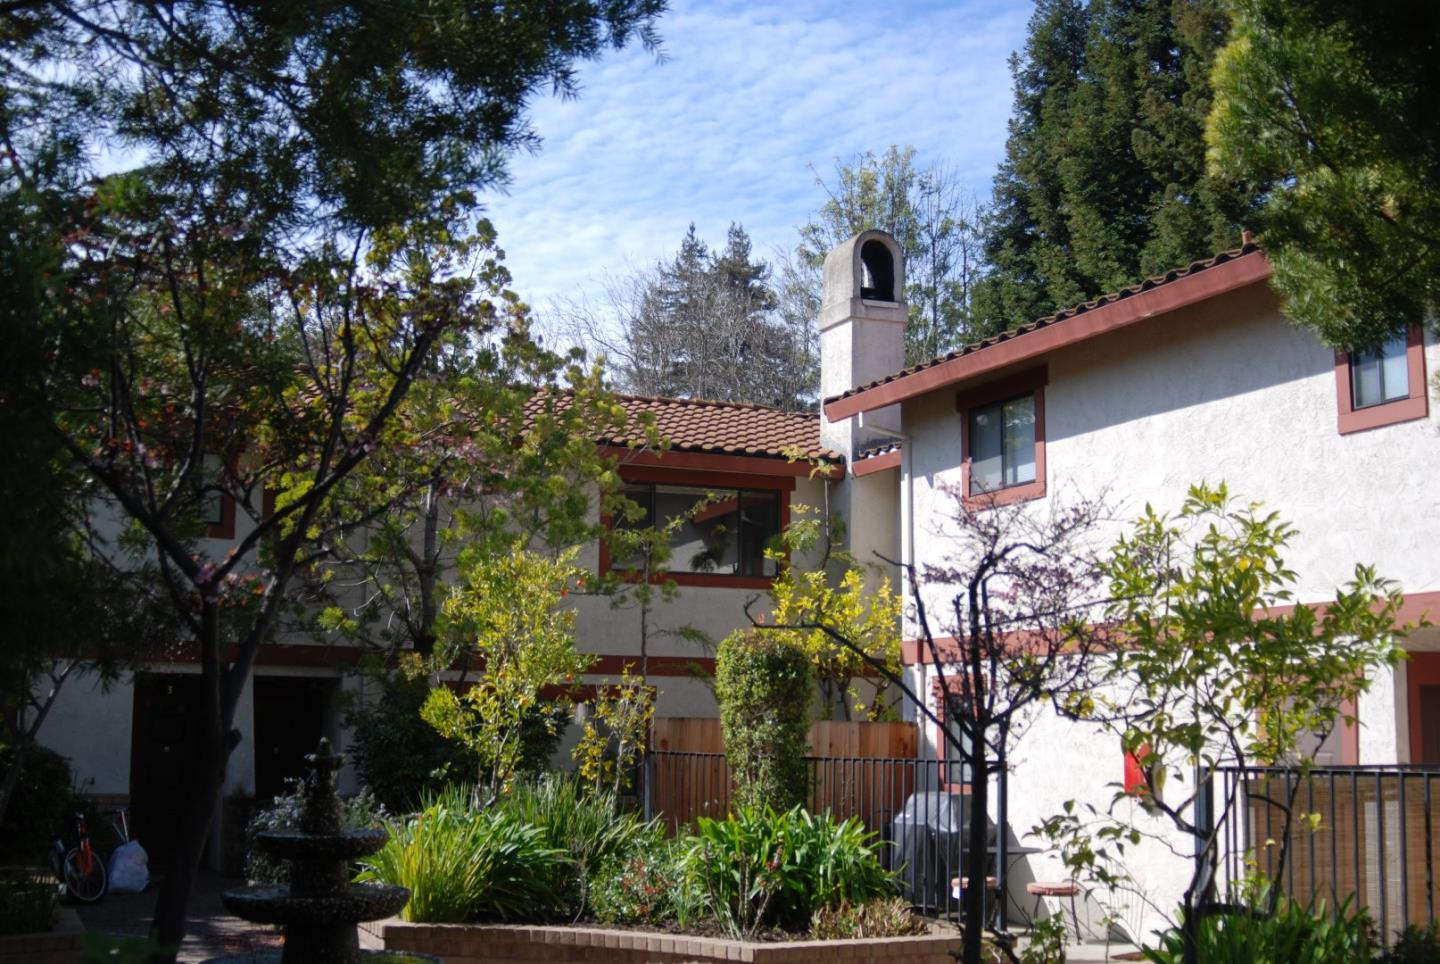 Multi-Family Home for Sale at 1002 Roble Avenue Menlo Park, California 94025 United States